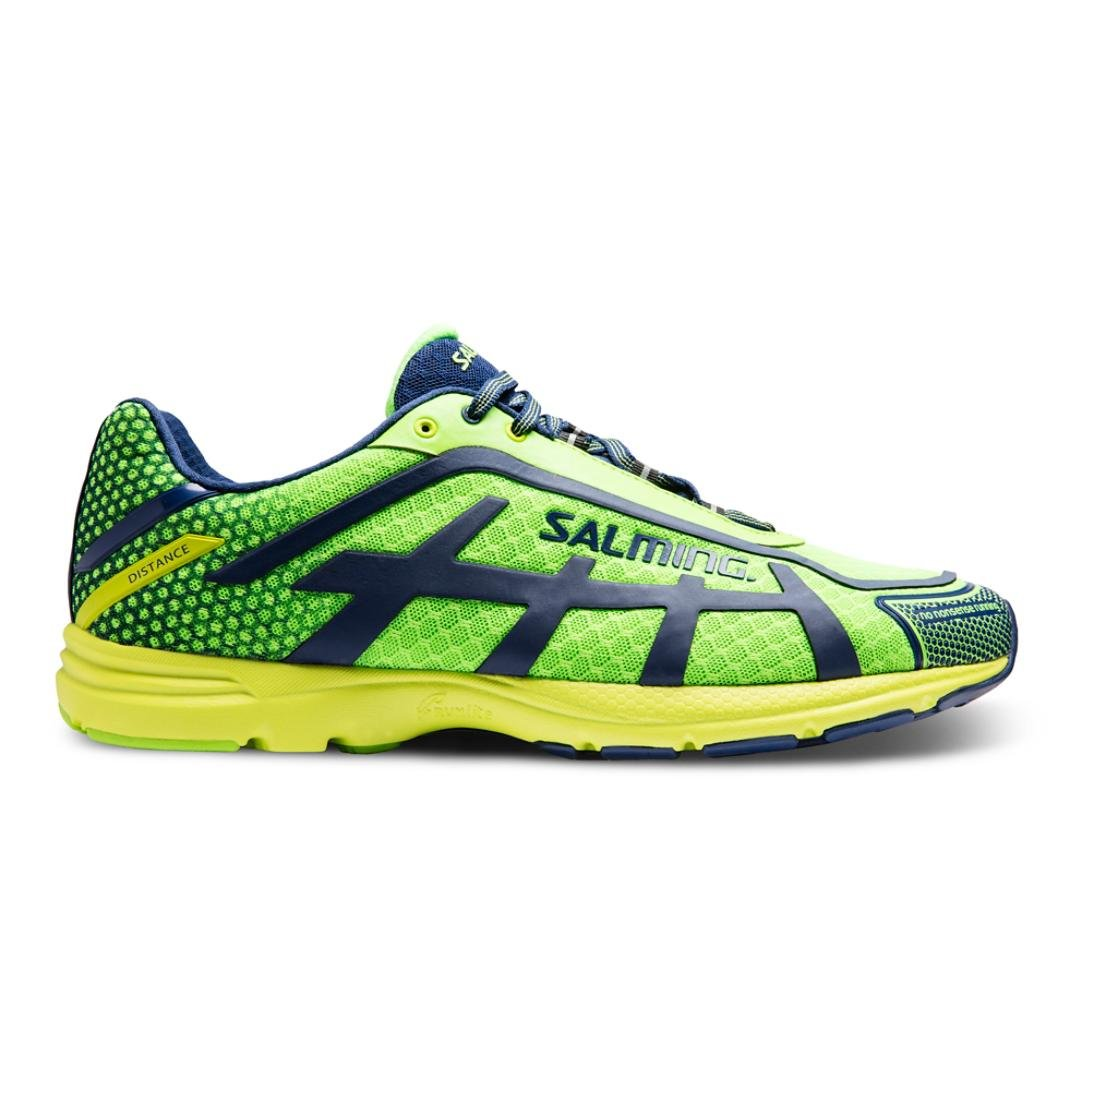 a1fafddc Amazon.com | Salming Men's Distance D5 Shoes | Running